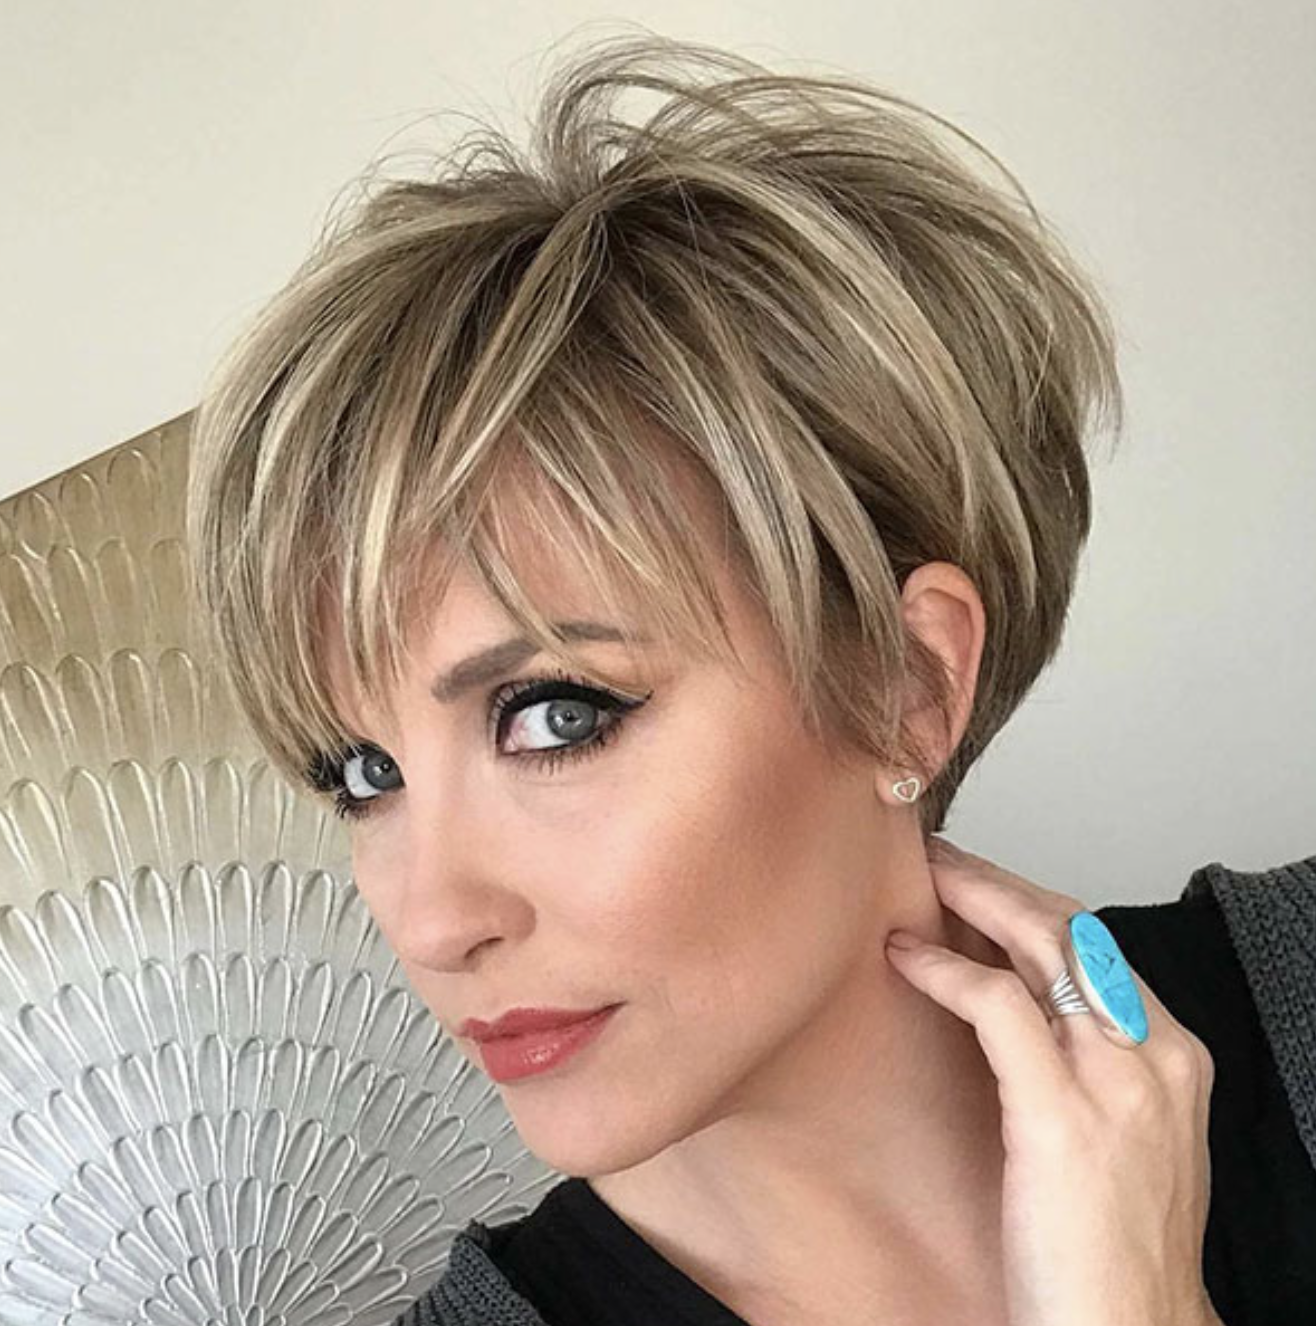 40 Best Short Straight Hair Ideas For Women Latesthairstylepedia Com